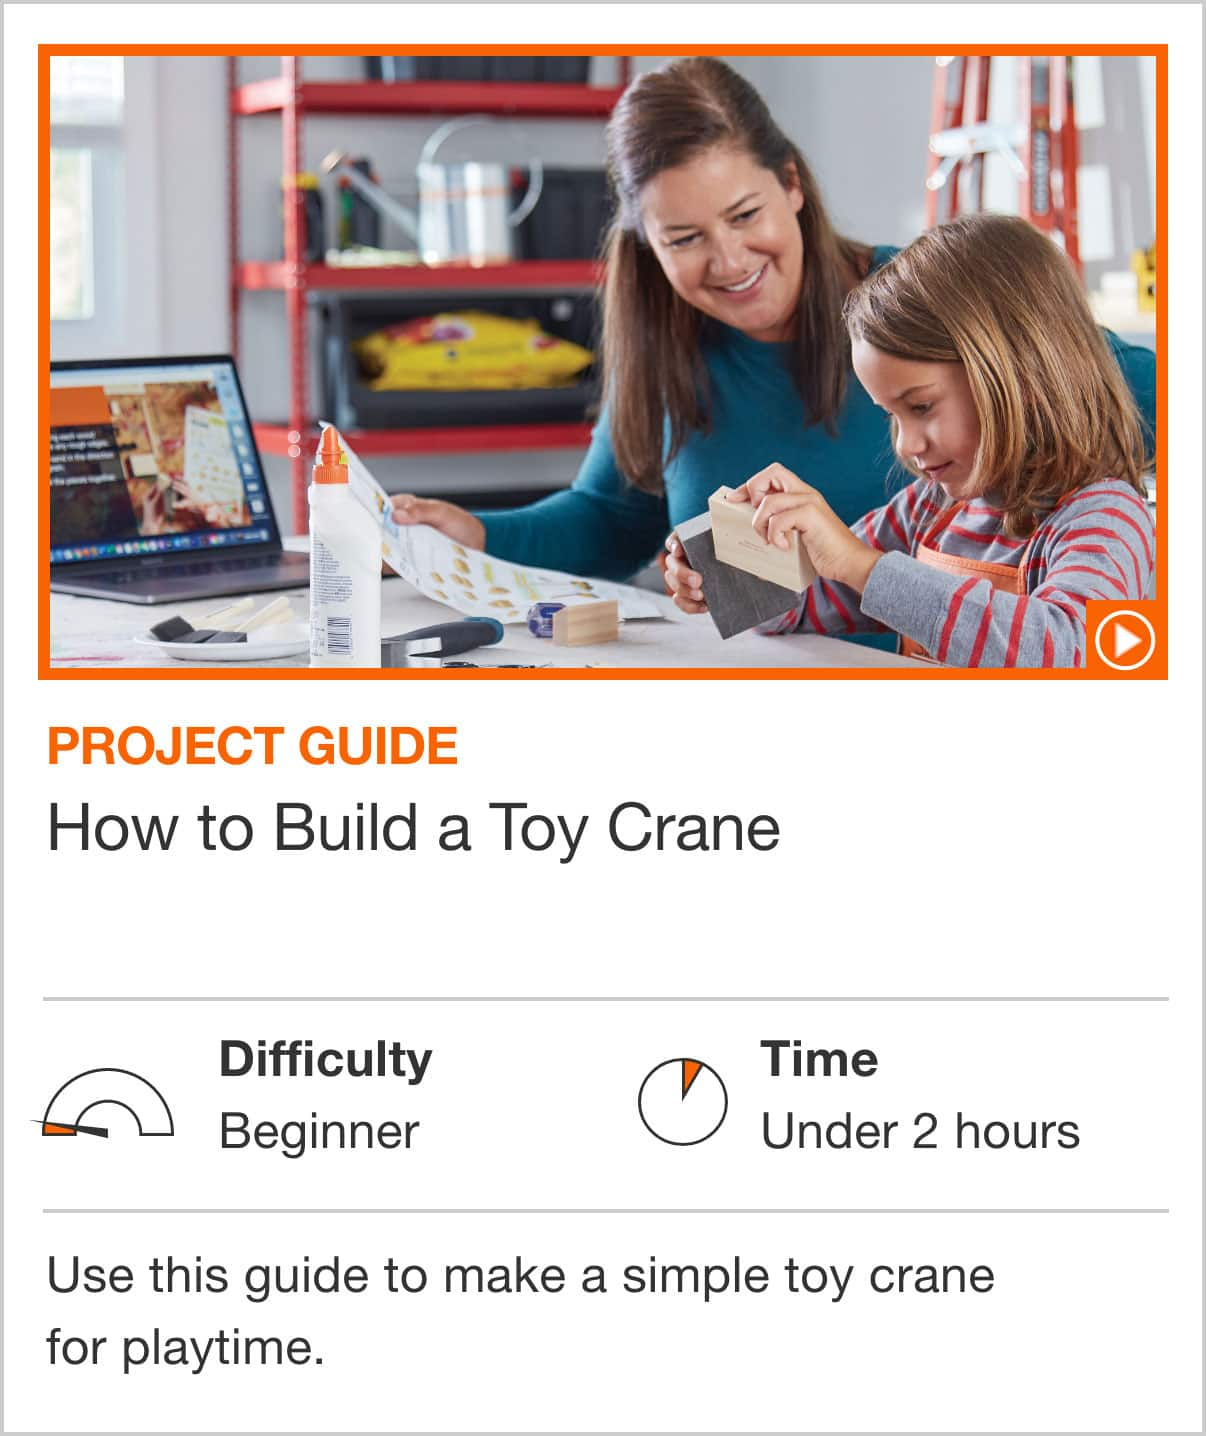 How to Build a Toy Crane